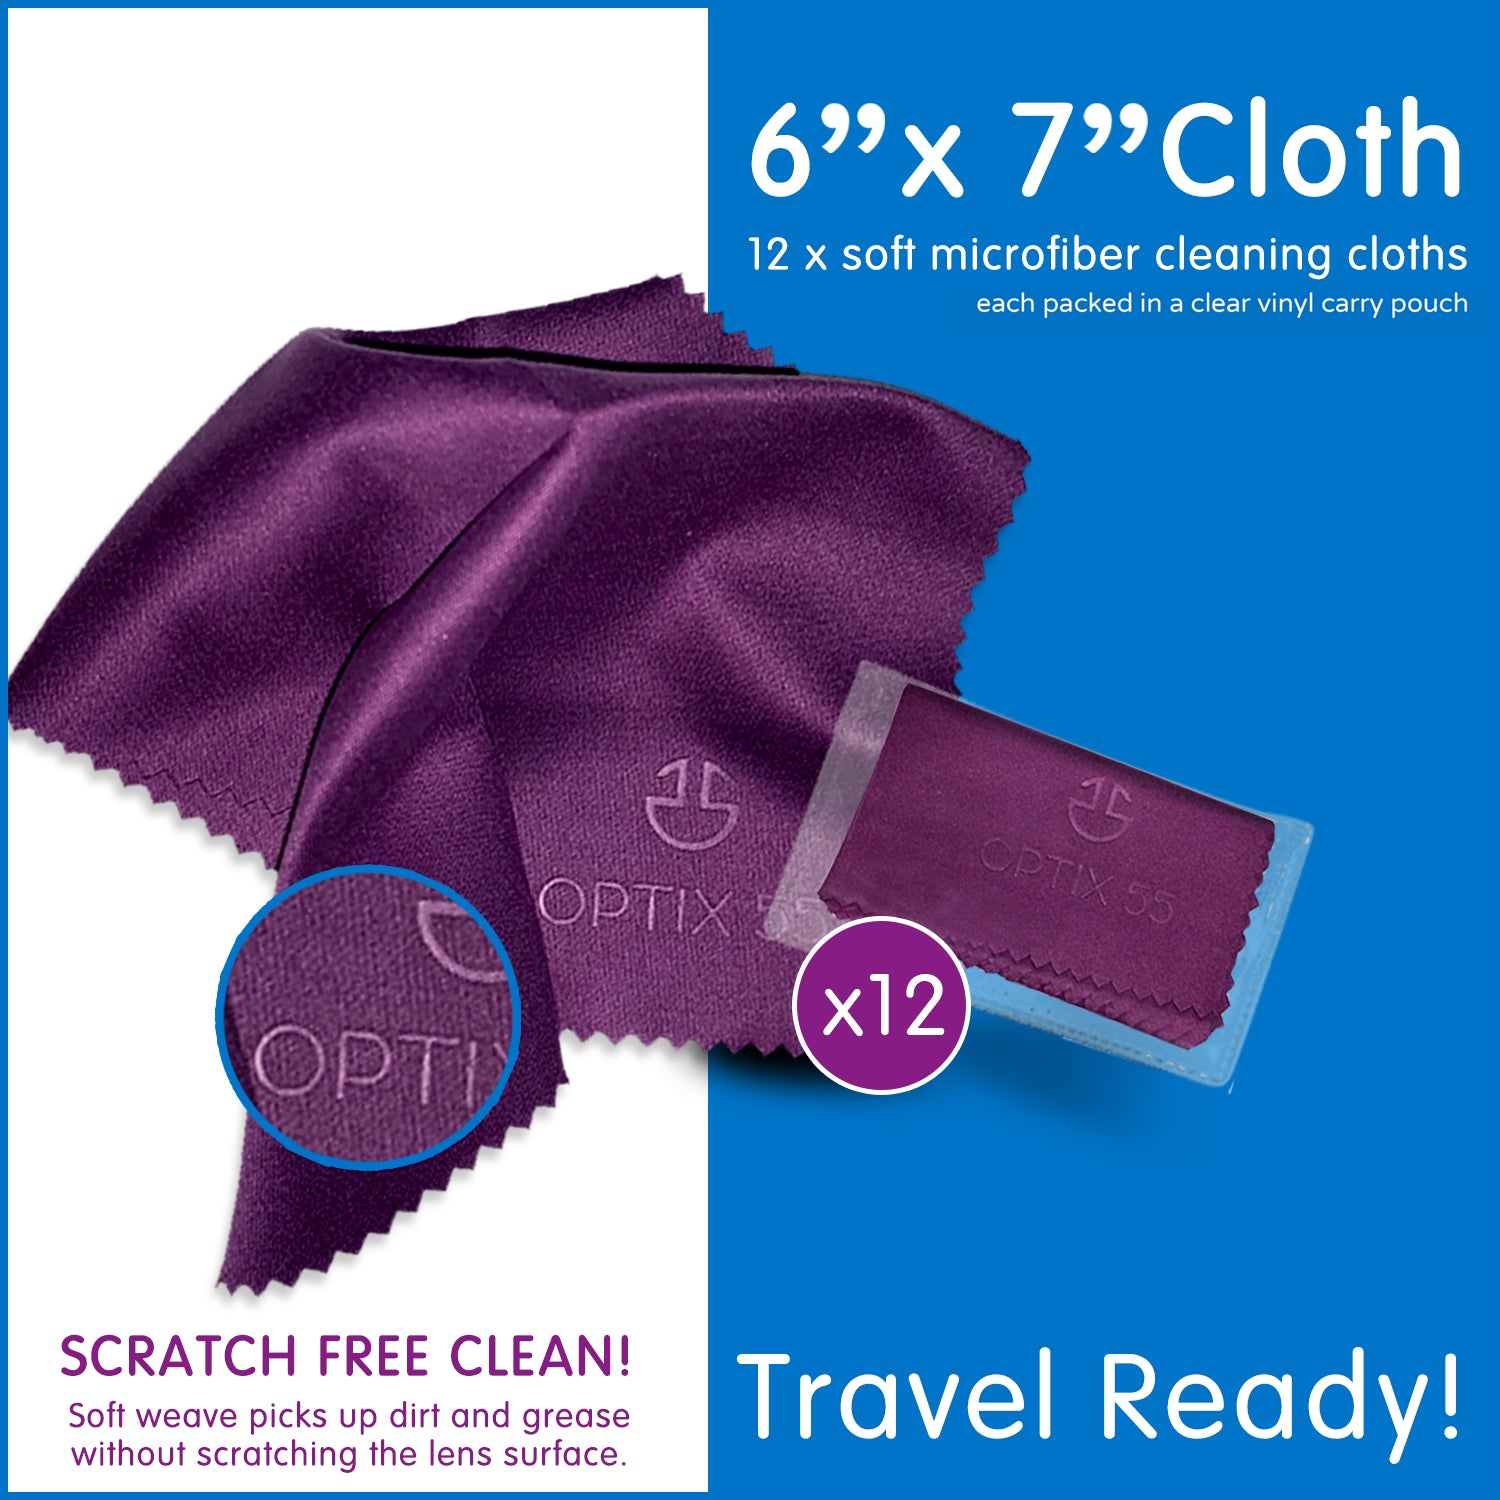 Microfiber Cleaning Cloths (12 Pack)